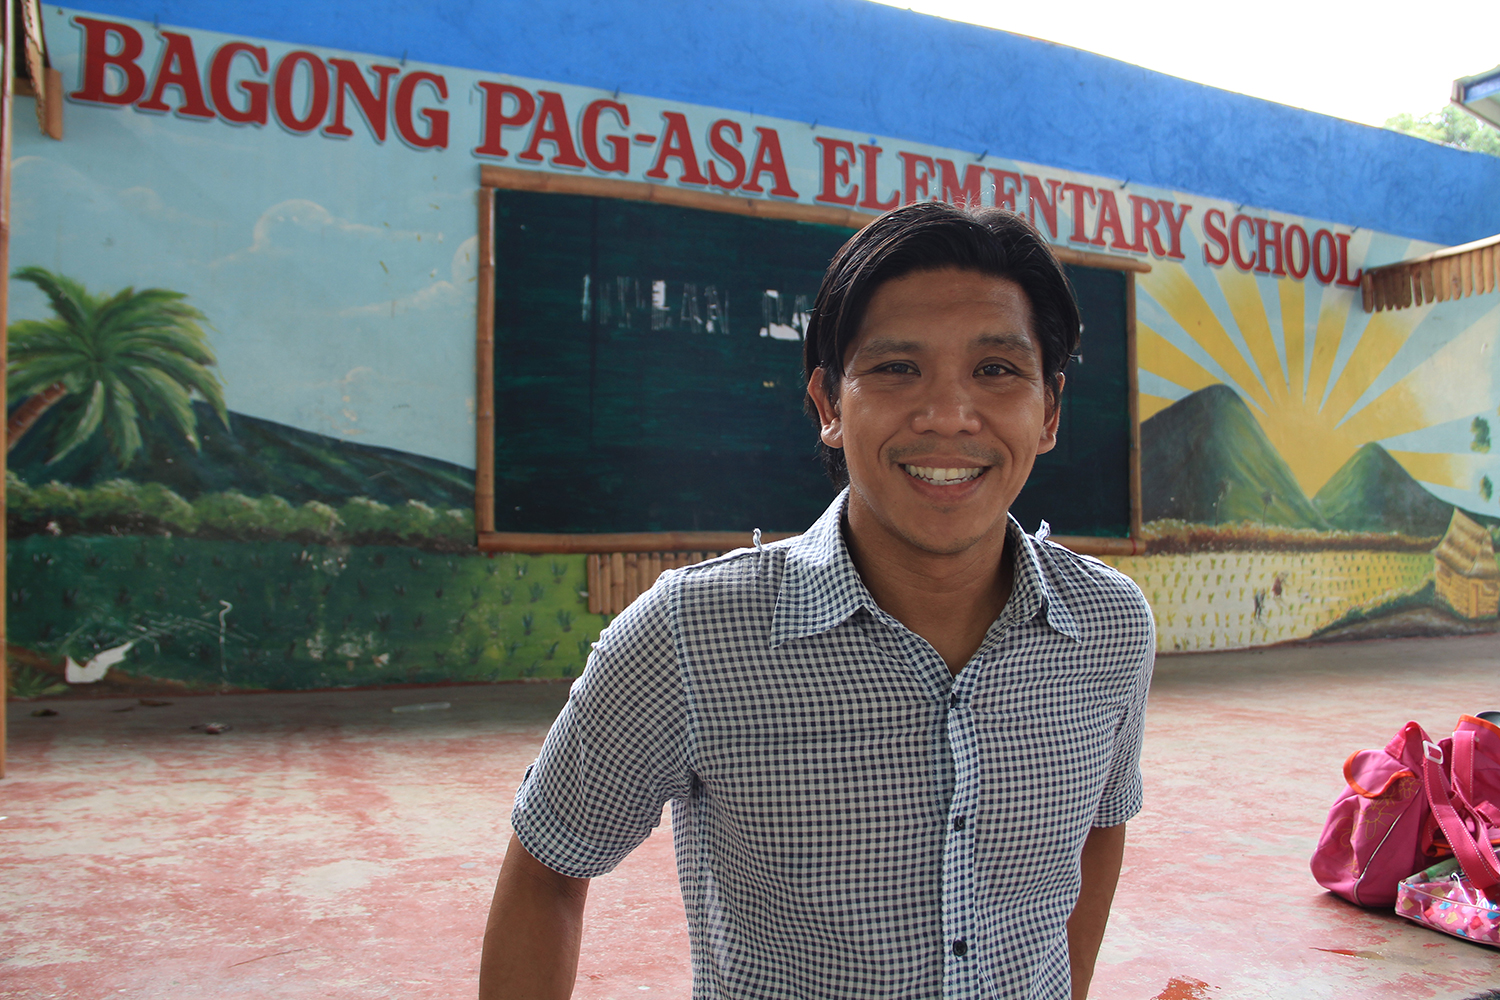 John Navarra, a Filipino American from Detroit, teaches third grade at Bagong Pag-asa Elementary School.  (Photo by Aurora Almendral)